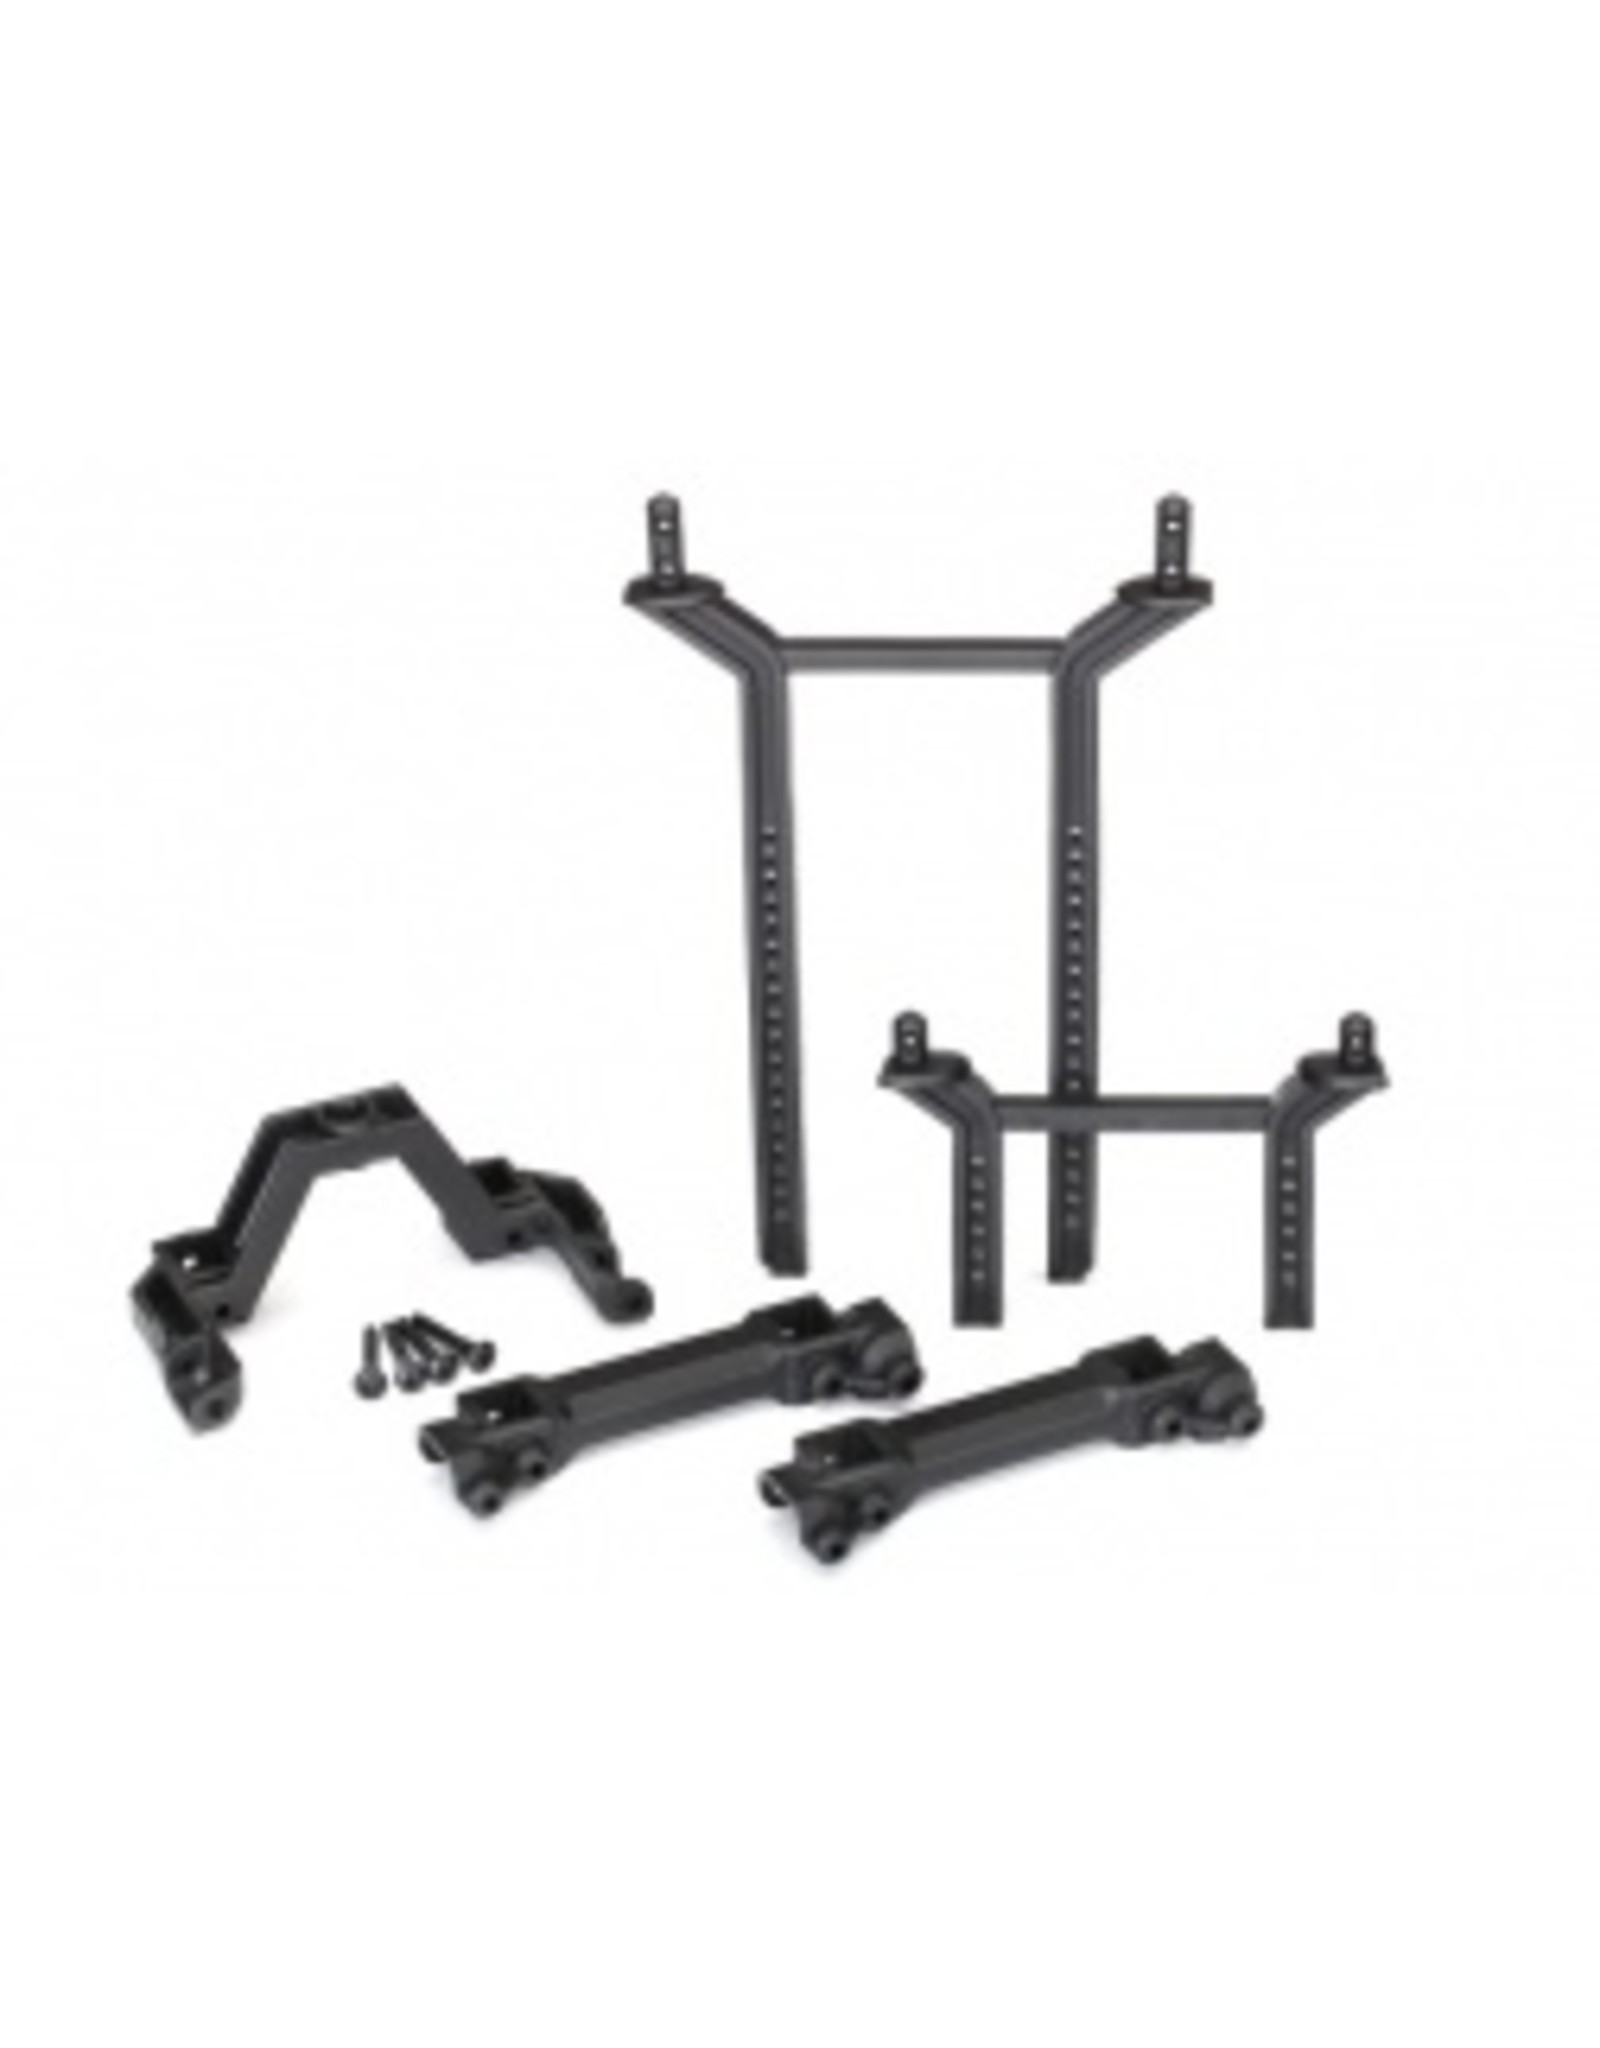 Traxxas Body mounts & posts, front & rear (complete set) / TRX-4  (TRA8215)